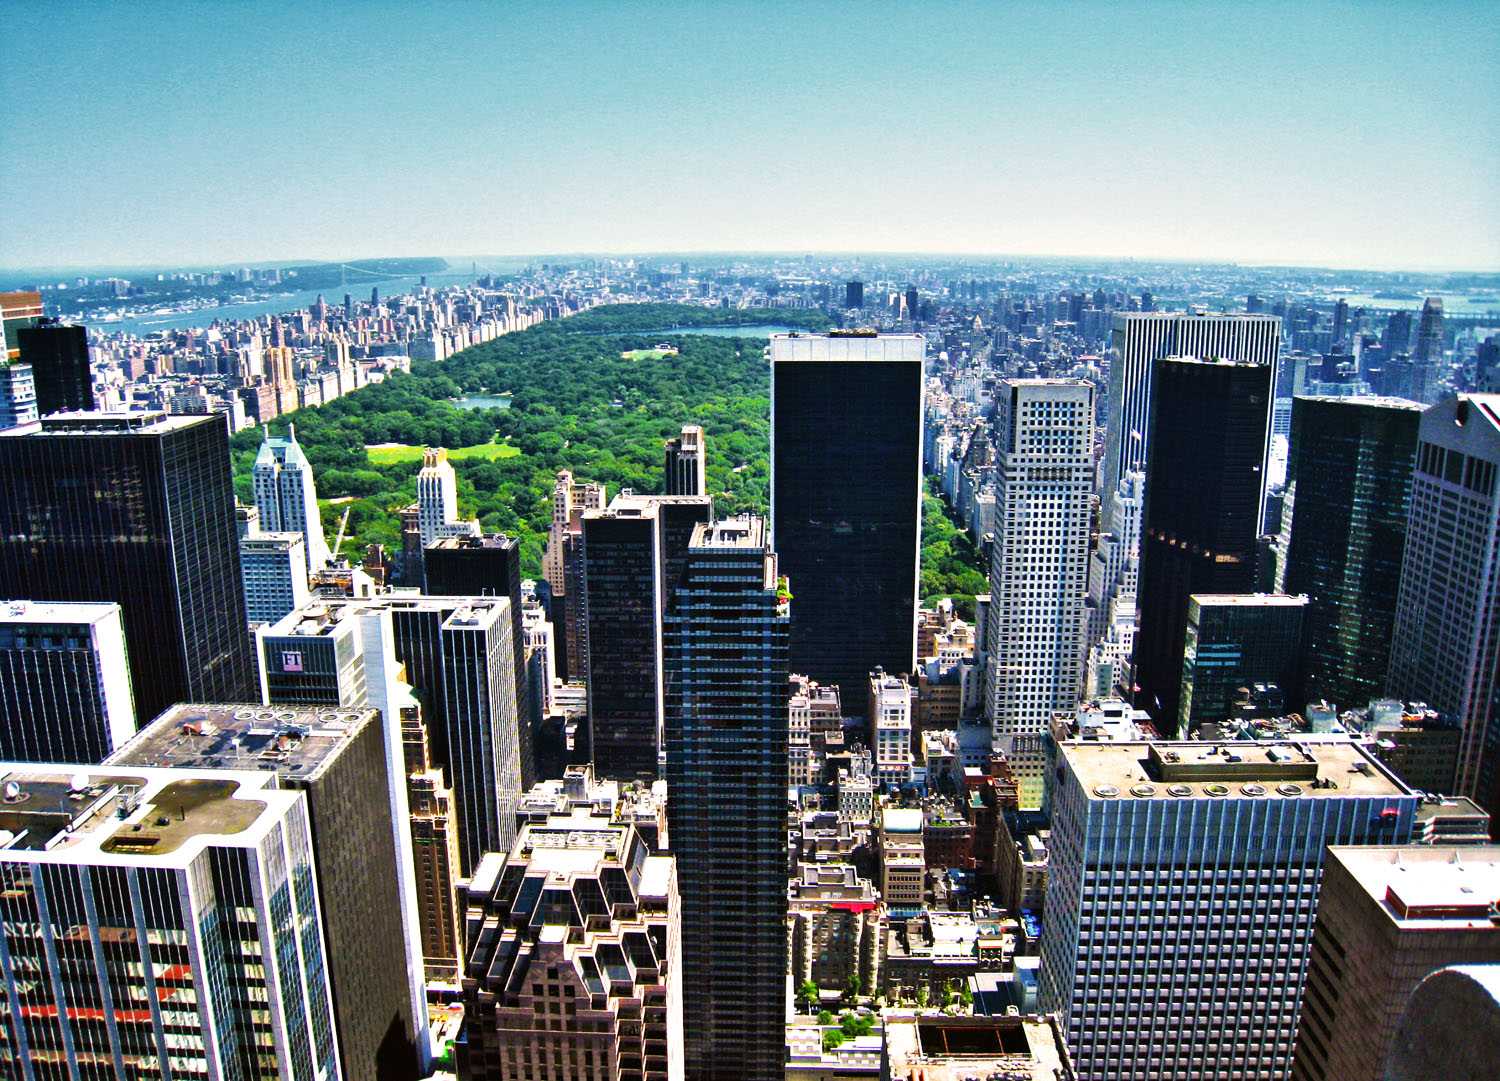 View of Central Park in New York City.